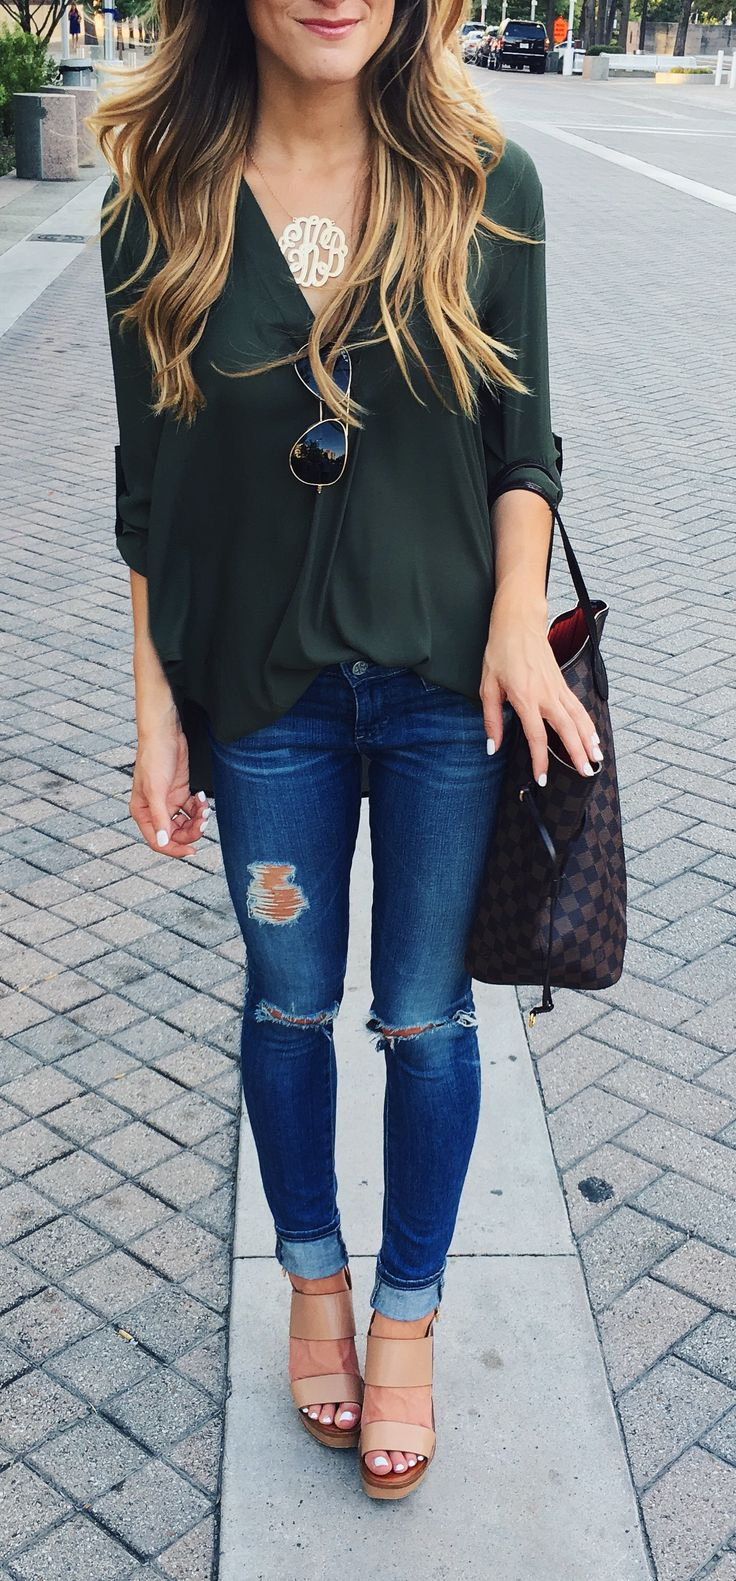 Best 25+ Distressed jeans outfit ideas on Pinterest | Distressed jeans Ripped jeans outfit and ...